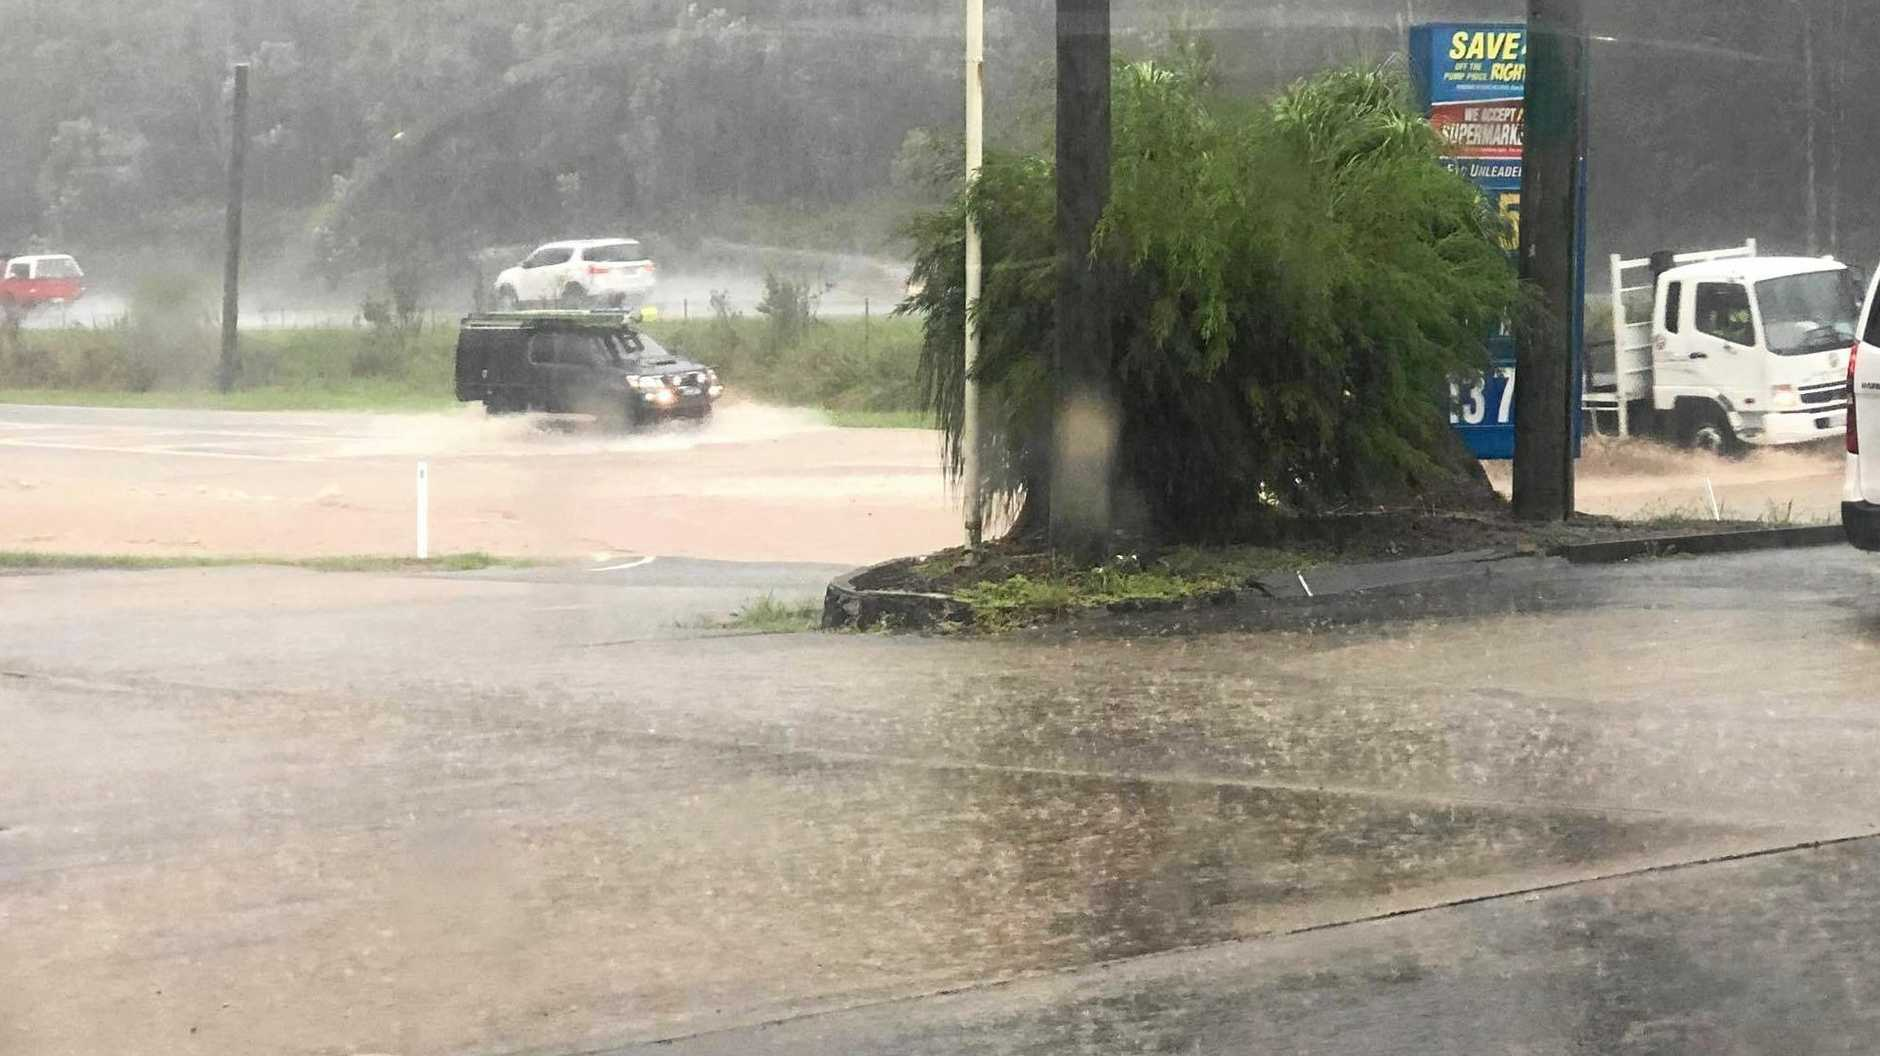 FLOOD WATCH: Several roads at Yandina were underwater after heavy rain this morning.